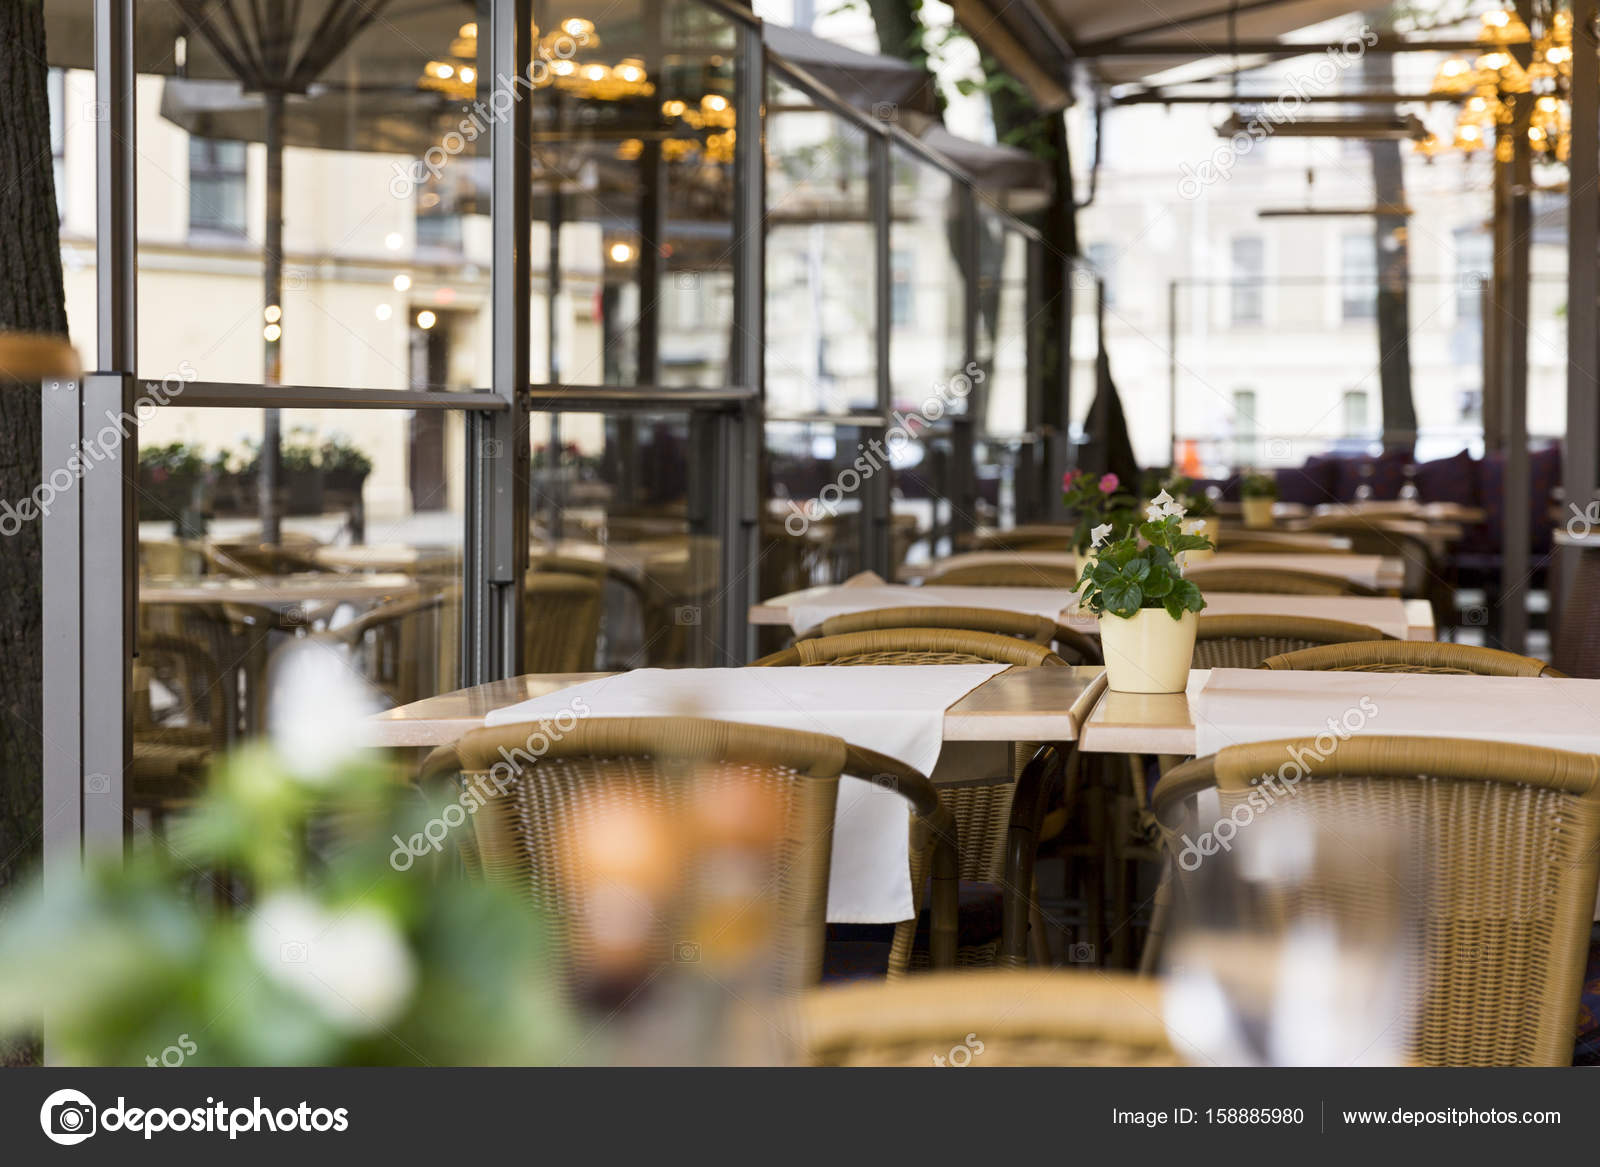 Empty Outdoor Restaurant Terrace Interior Stock Photo C Artursfoto1 158885980